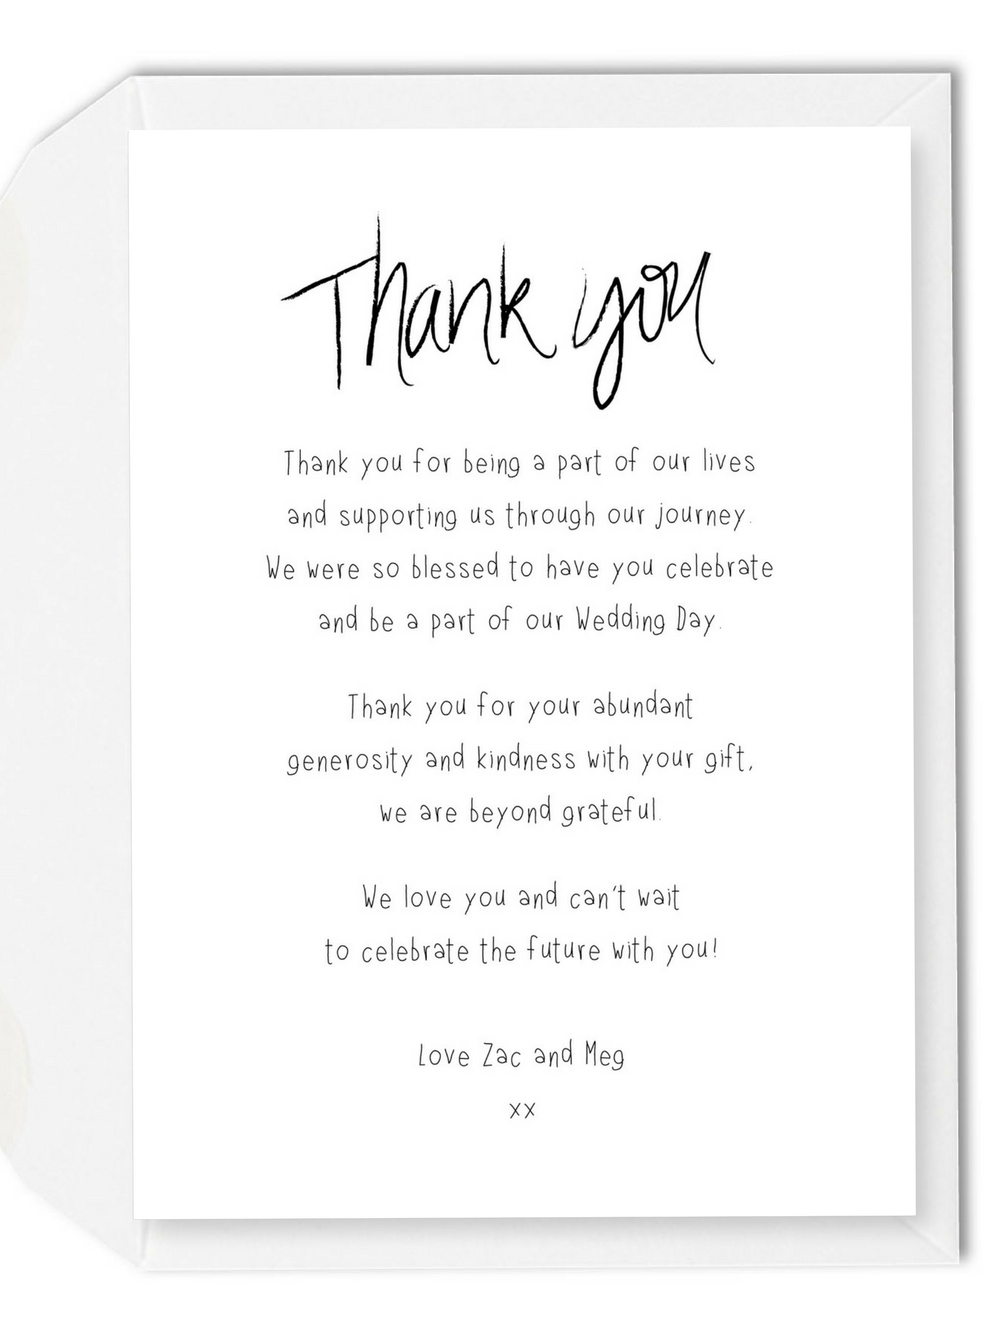 Wording Ideas For Your Wedding Thank You Cards – For The Love Of With Regard To Template For Wedding Thank You Cards